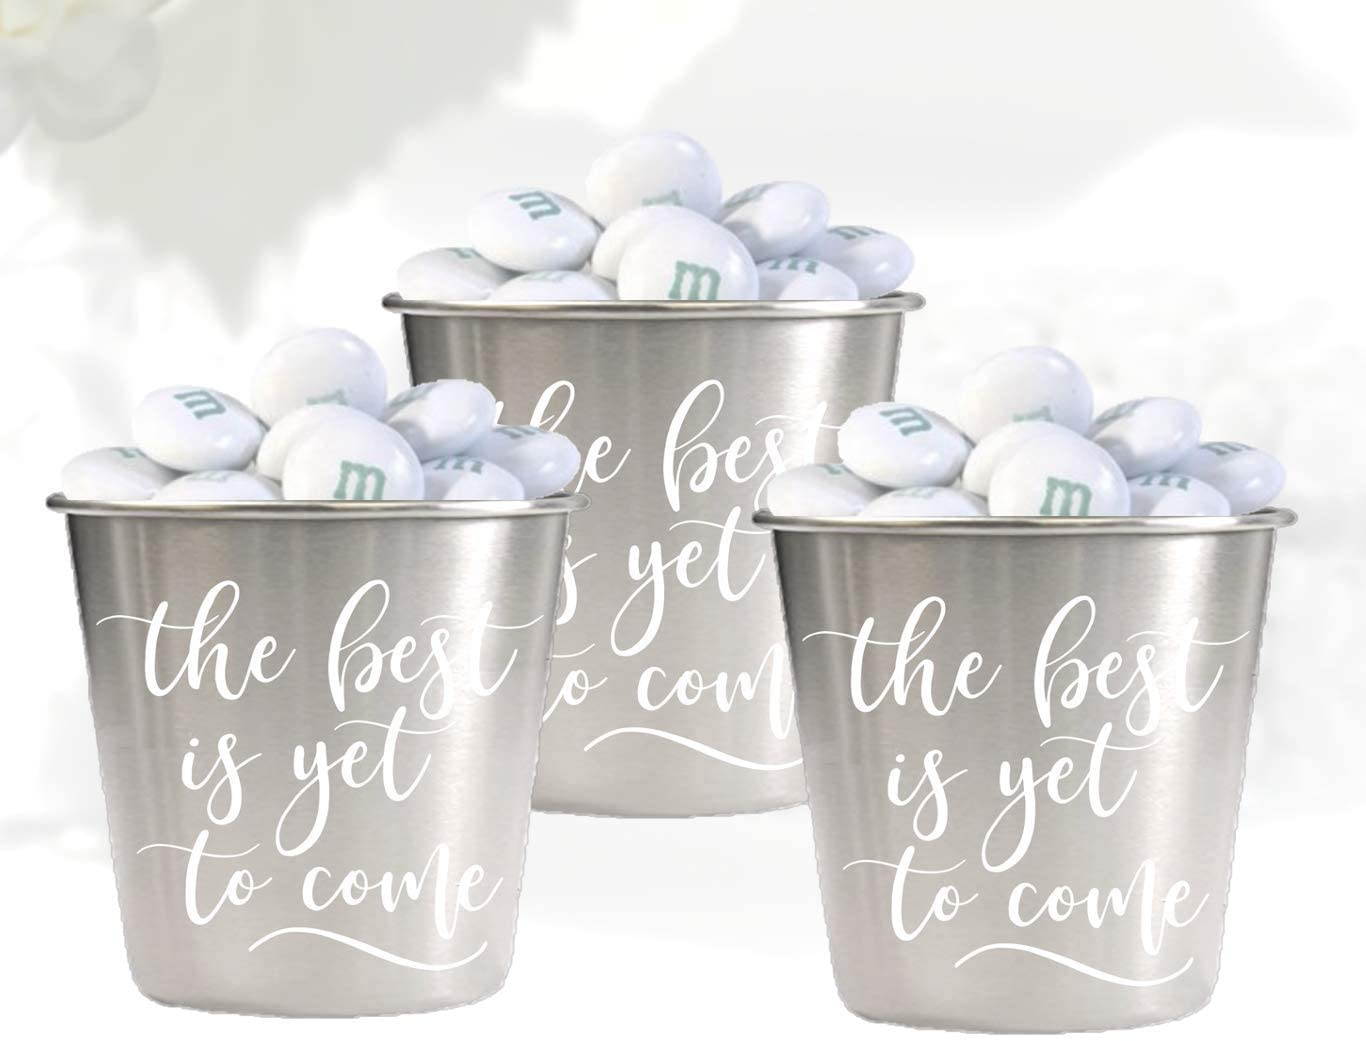 12 Piece Complete Wedding Favors Set | Environmentally-Friendly Stainless Steel 1.5oz Shot Glasses | Groomsmen + Bridesmaid for Bachelor Bachelorette Parties (12 Shotglasses + Cards)